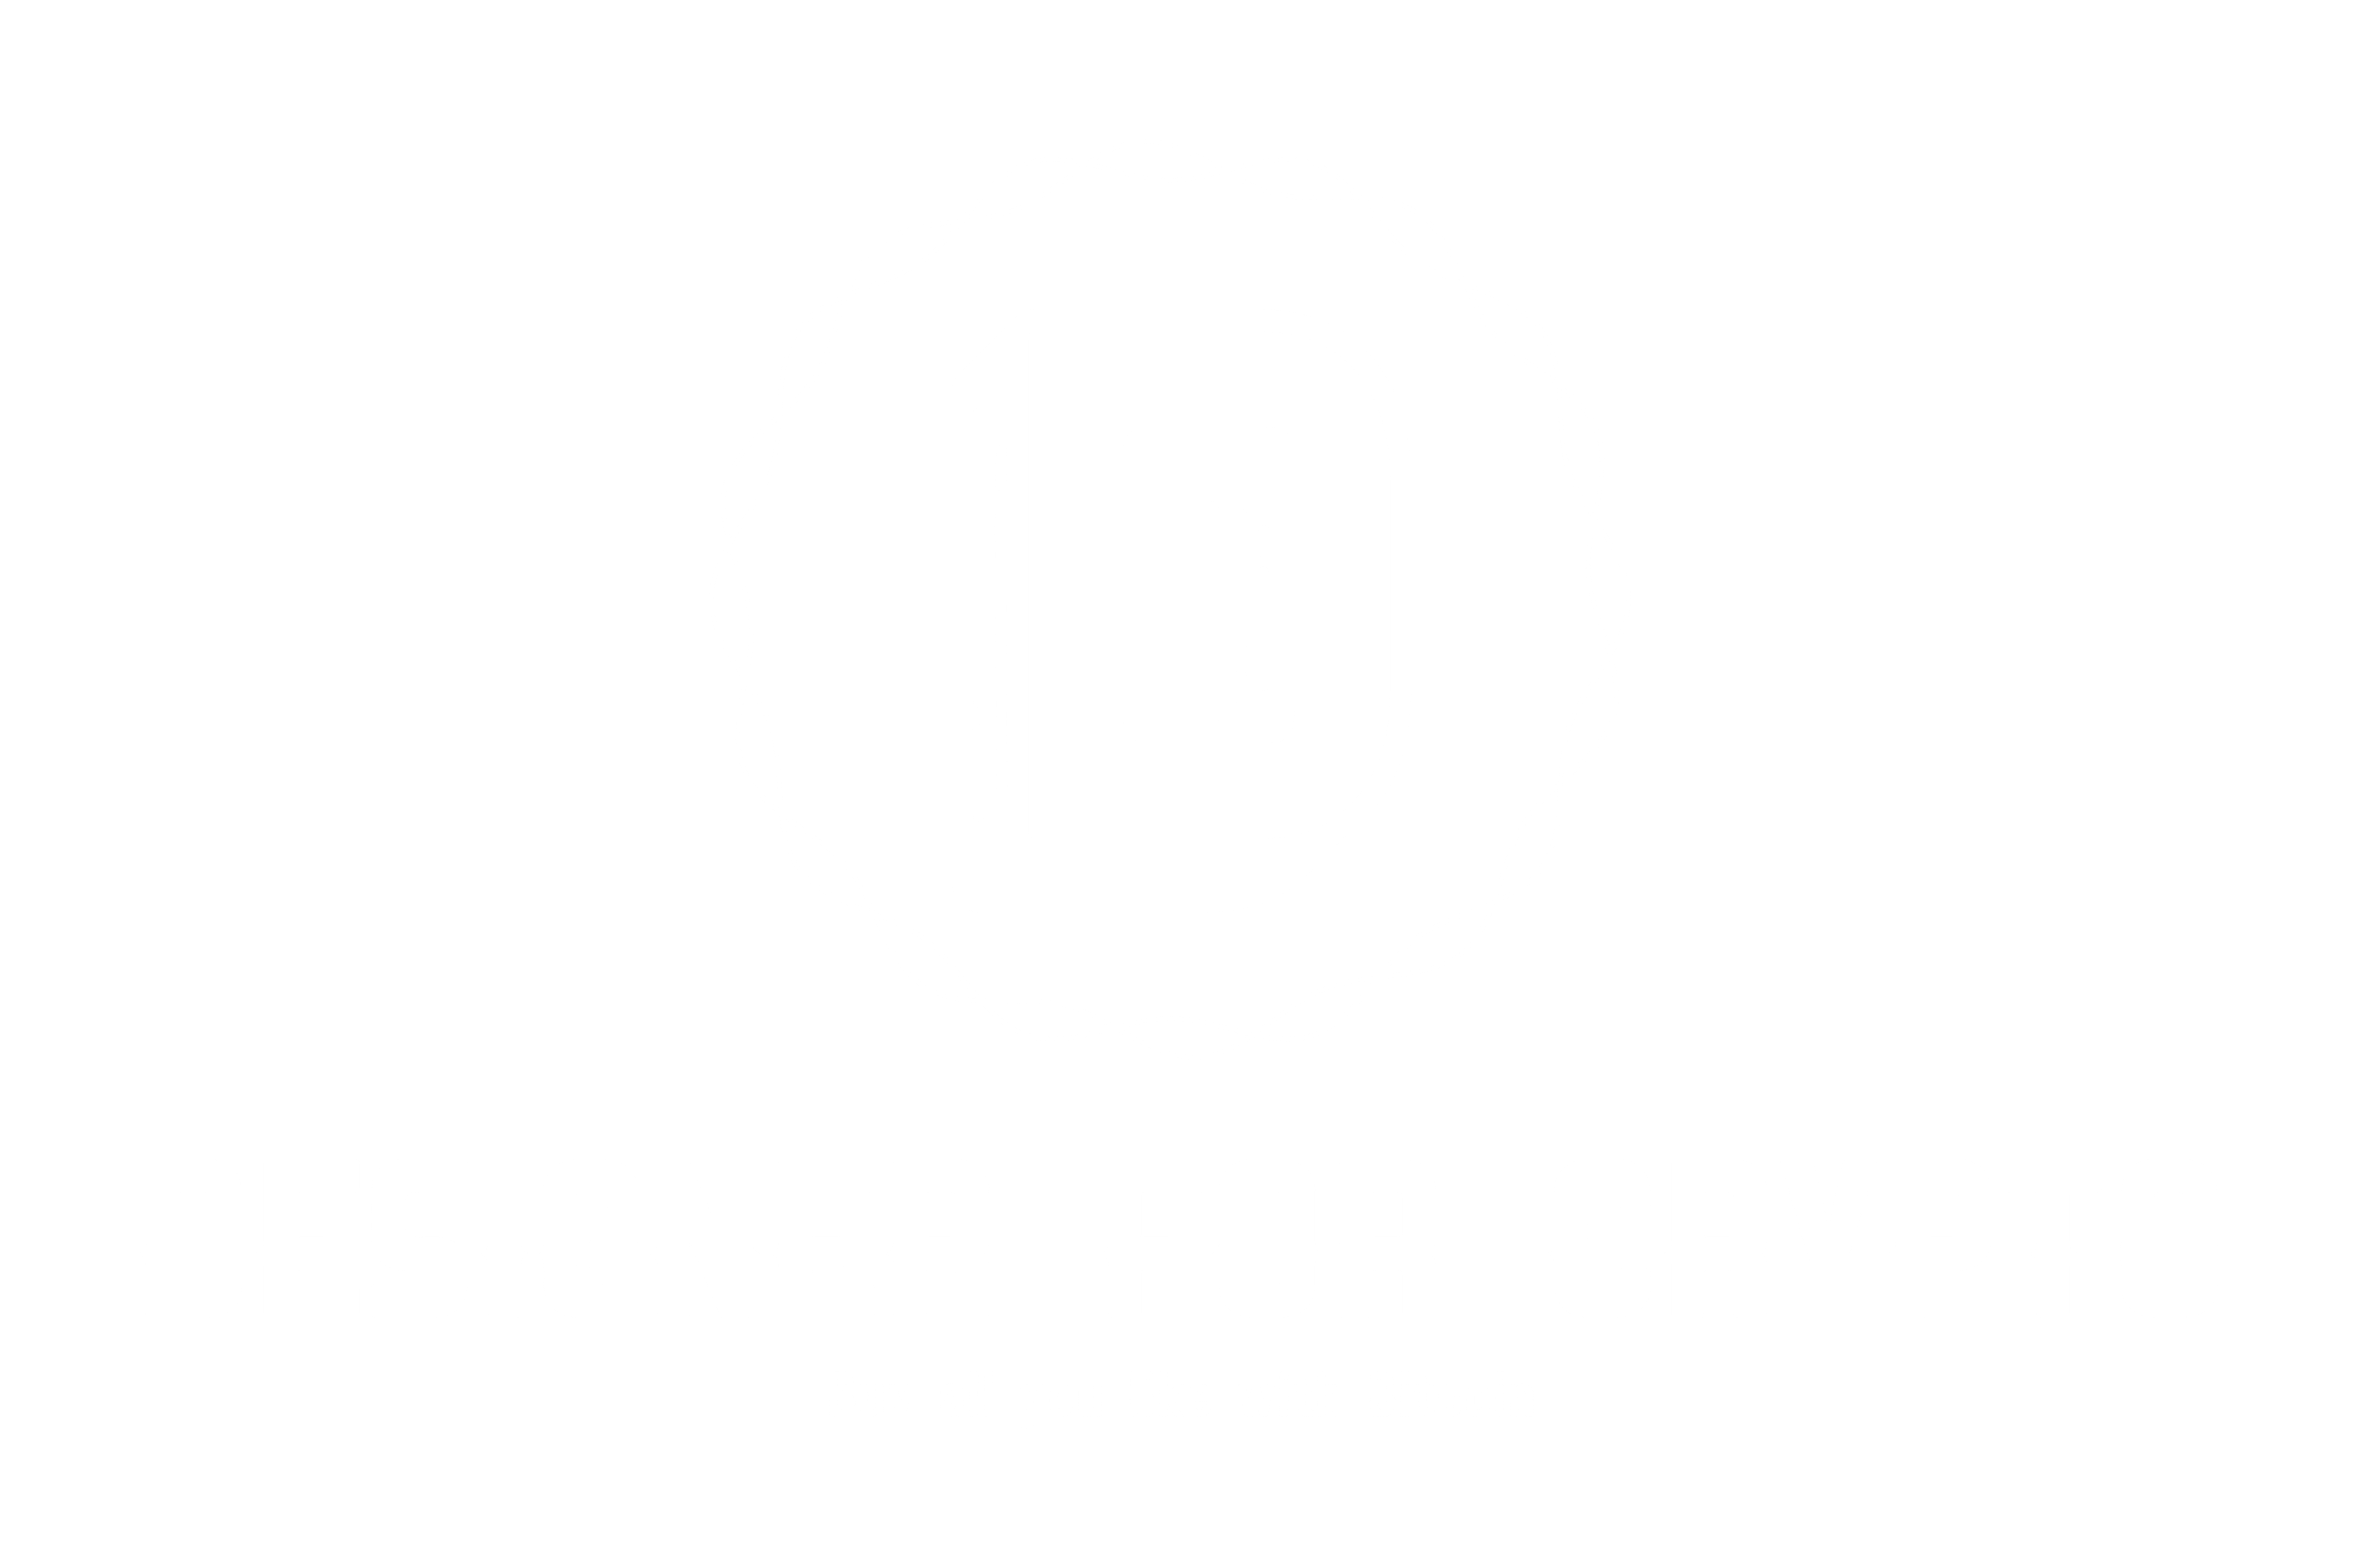 Designer for Crypto